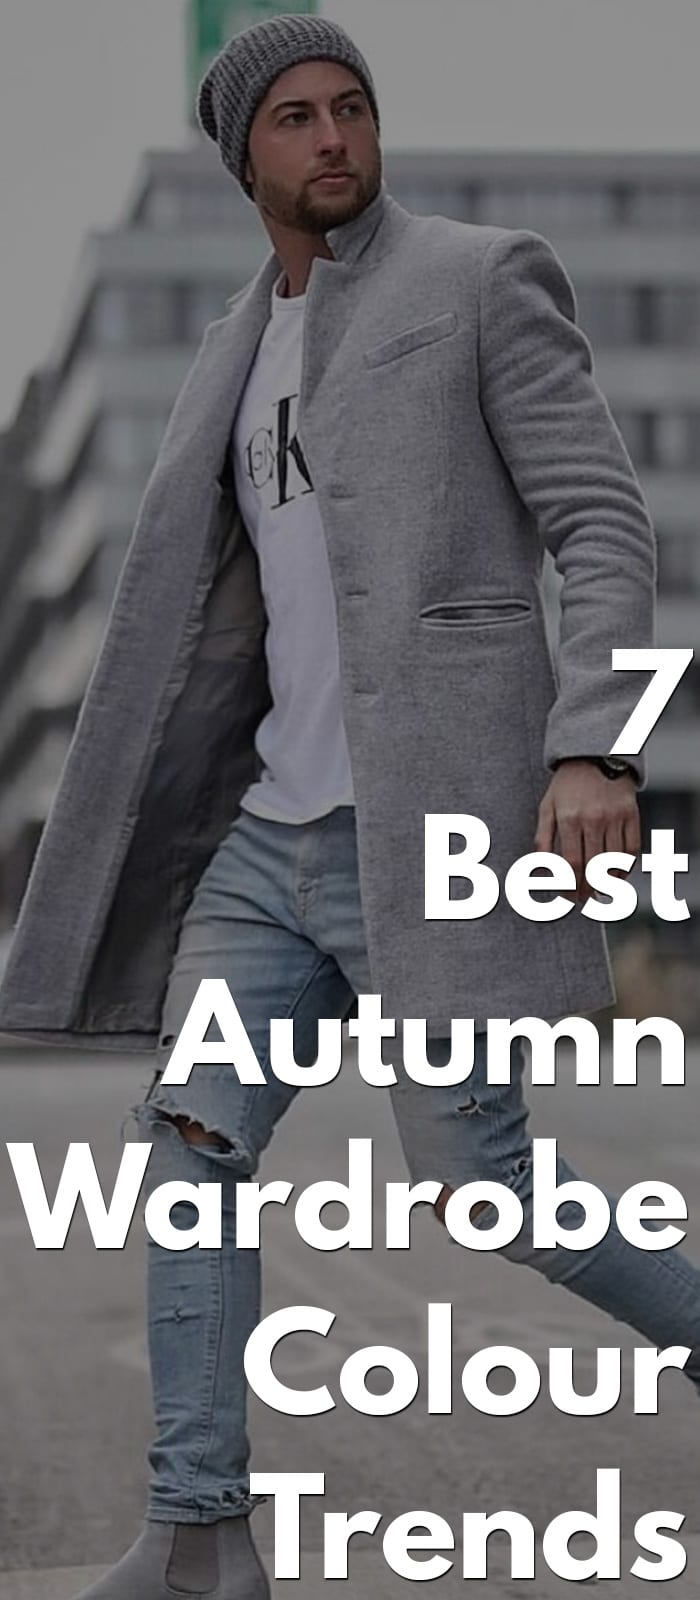 7 Best Autumn Wardrobe Colour Trends